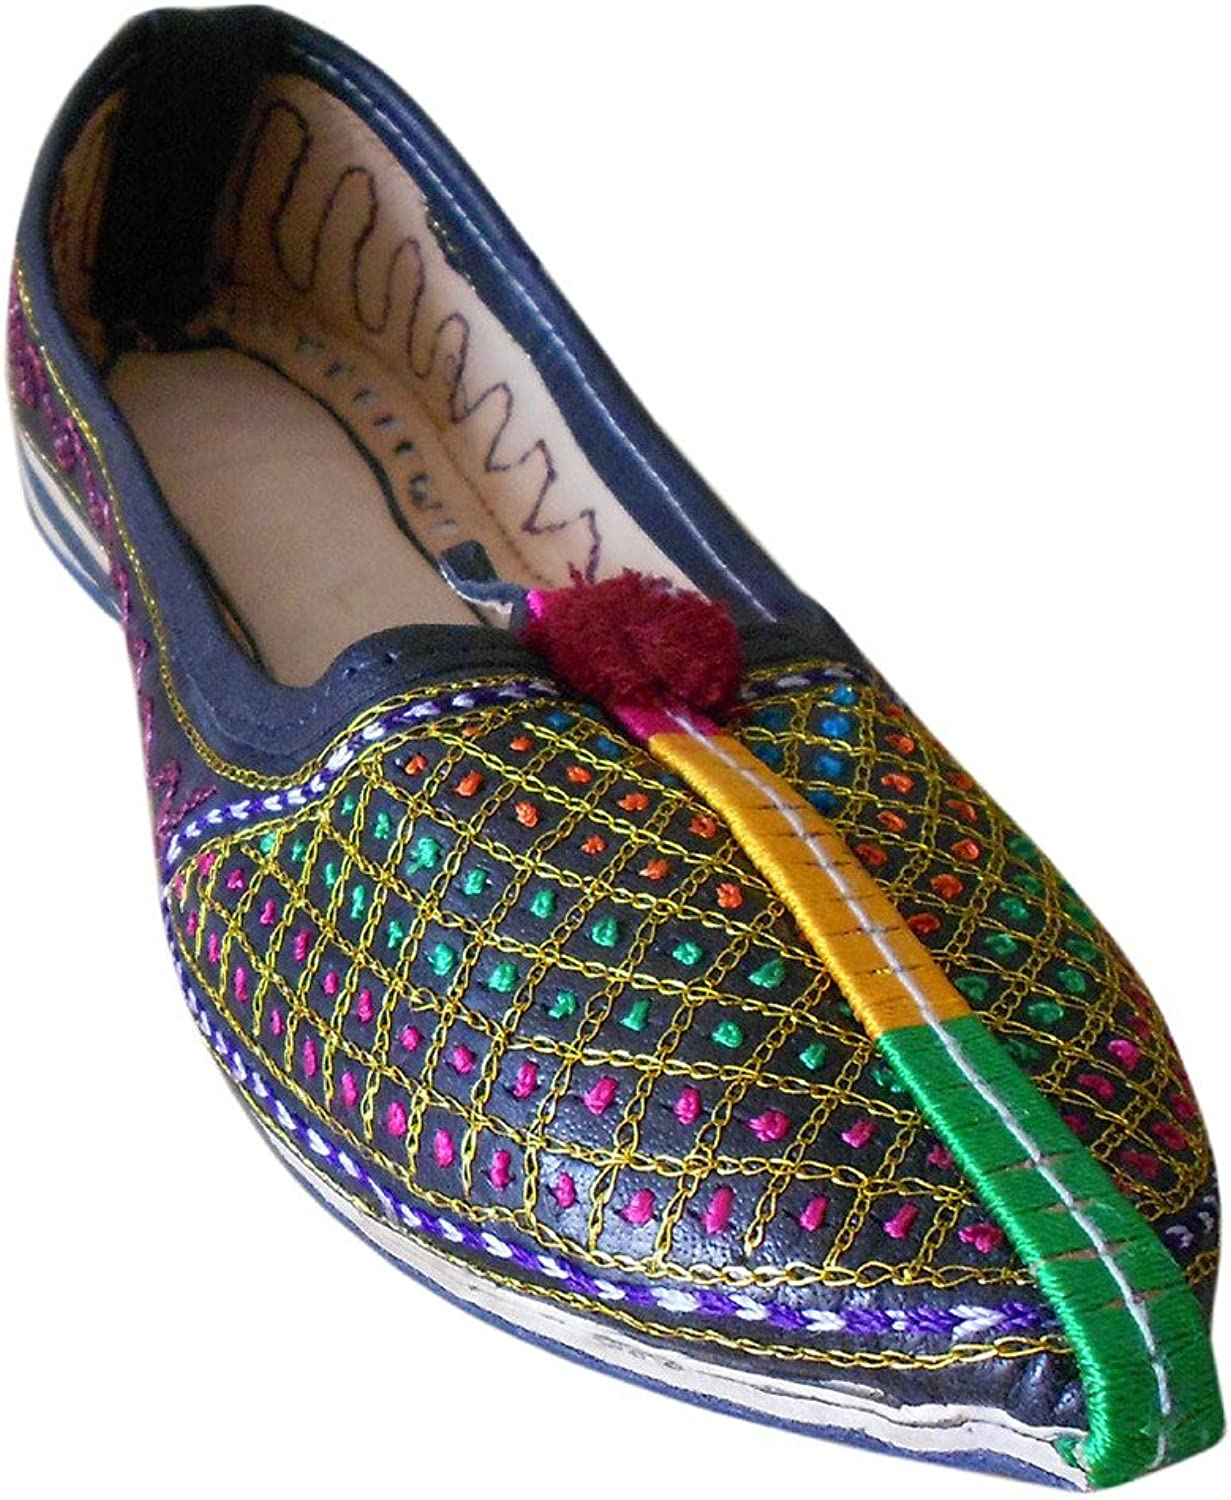 Kalra Creations Women's Traditional Indian Leather with Embroidery Party shoes